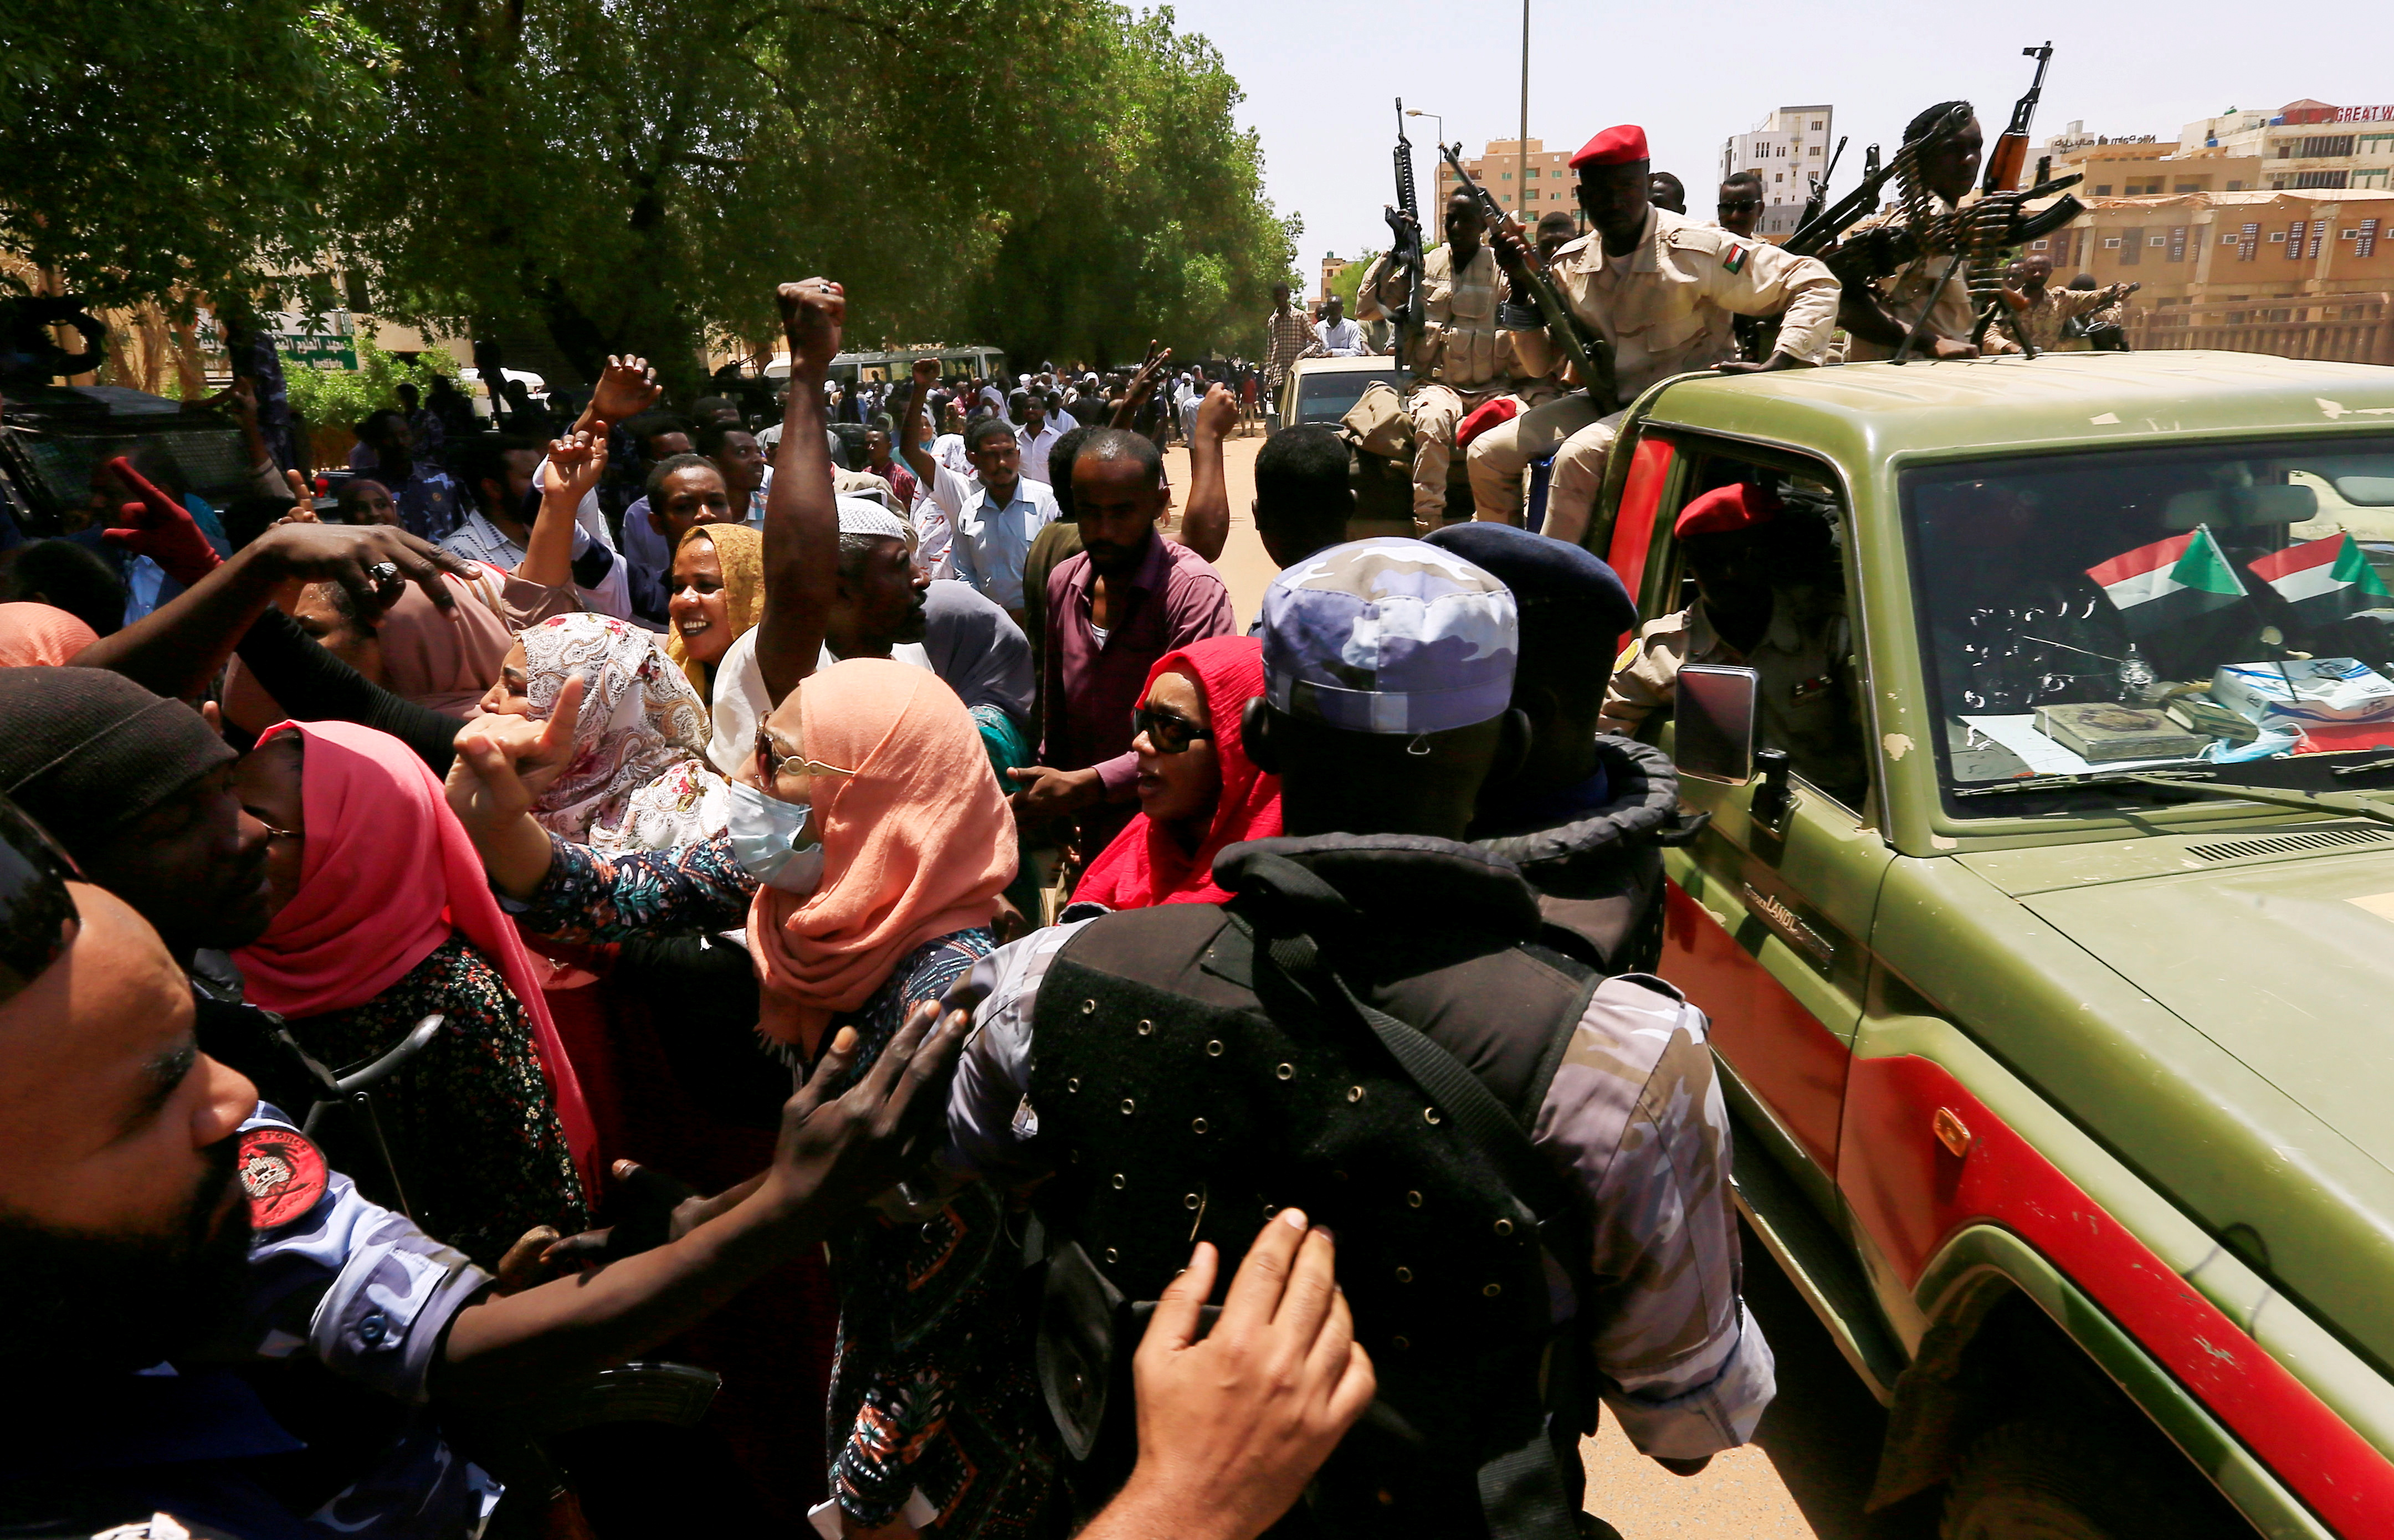 Sudanese citizens attempt to cross a police blockade as they chant slogans outside the court during the new trial against ousted President Omar al-Bashir and some of his former allies on charges of leading a military coup that brought the autocrat to power in 1989, in Khartoum, Sudan September 1, 2020. REUTERS/Mohamed Nureldin Abdallah/File Photo